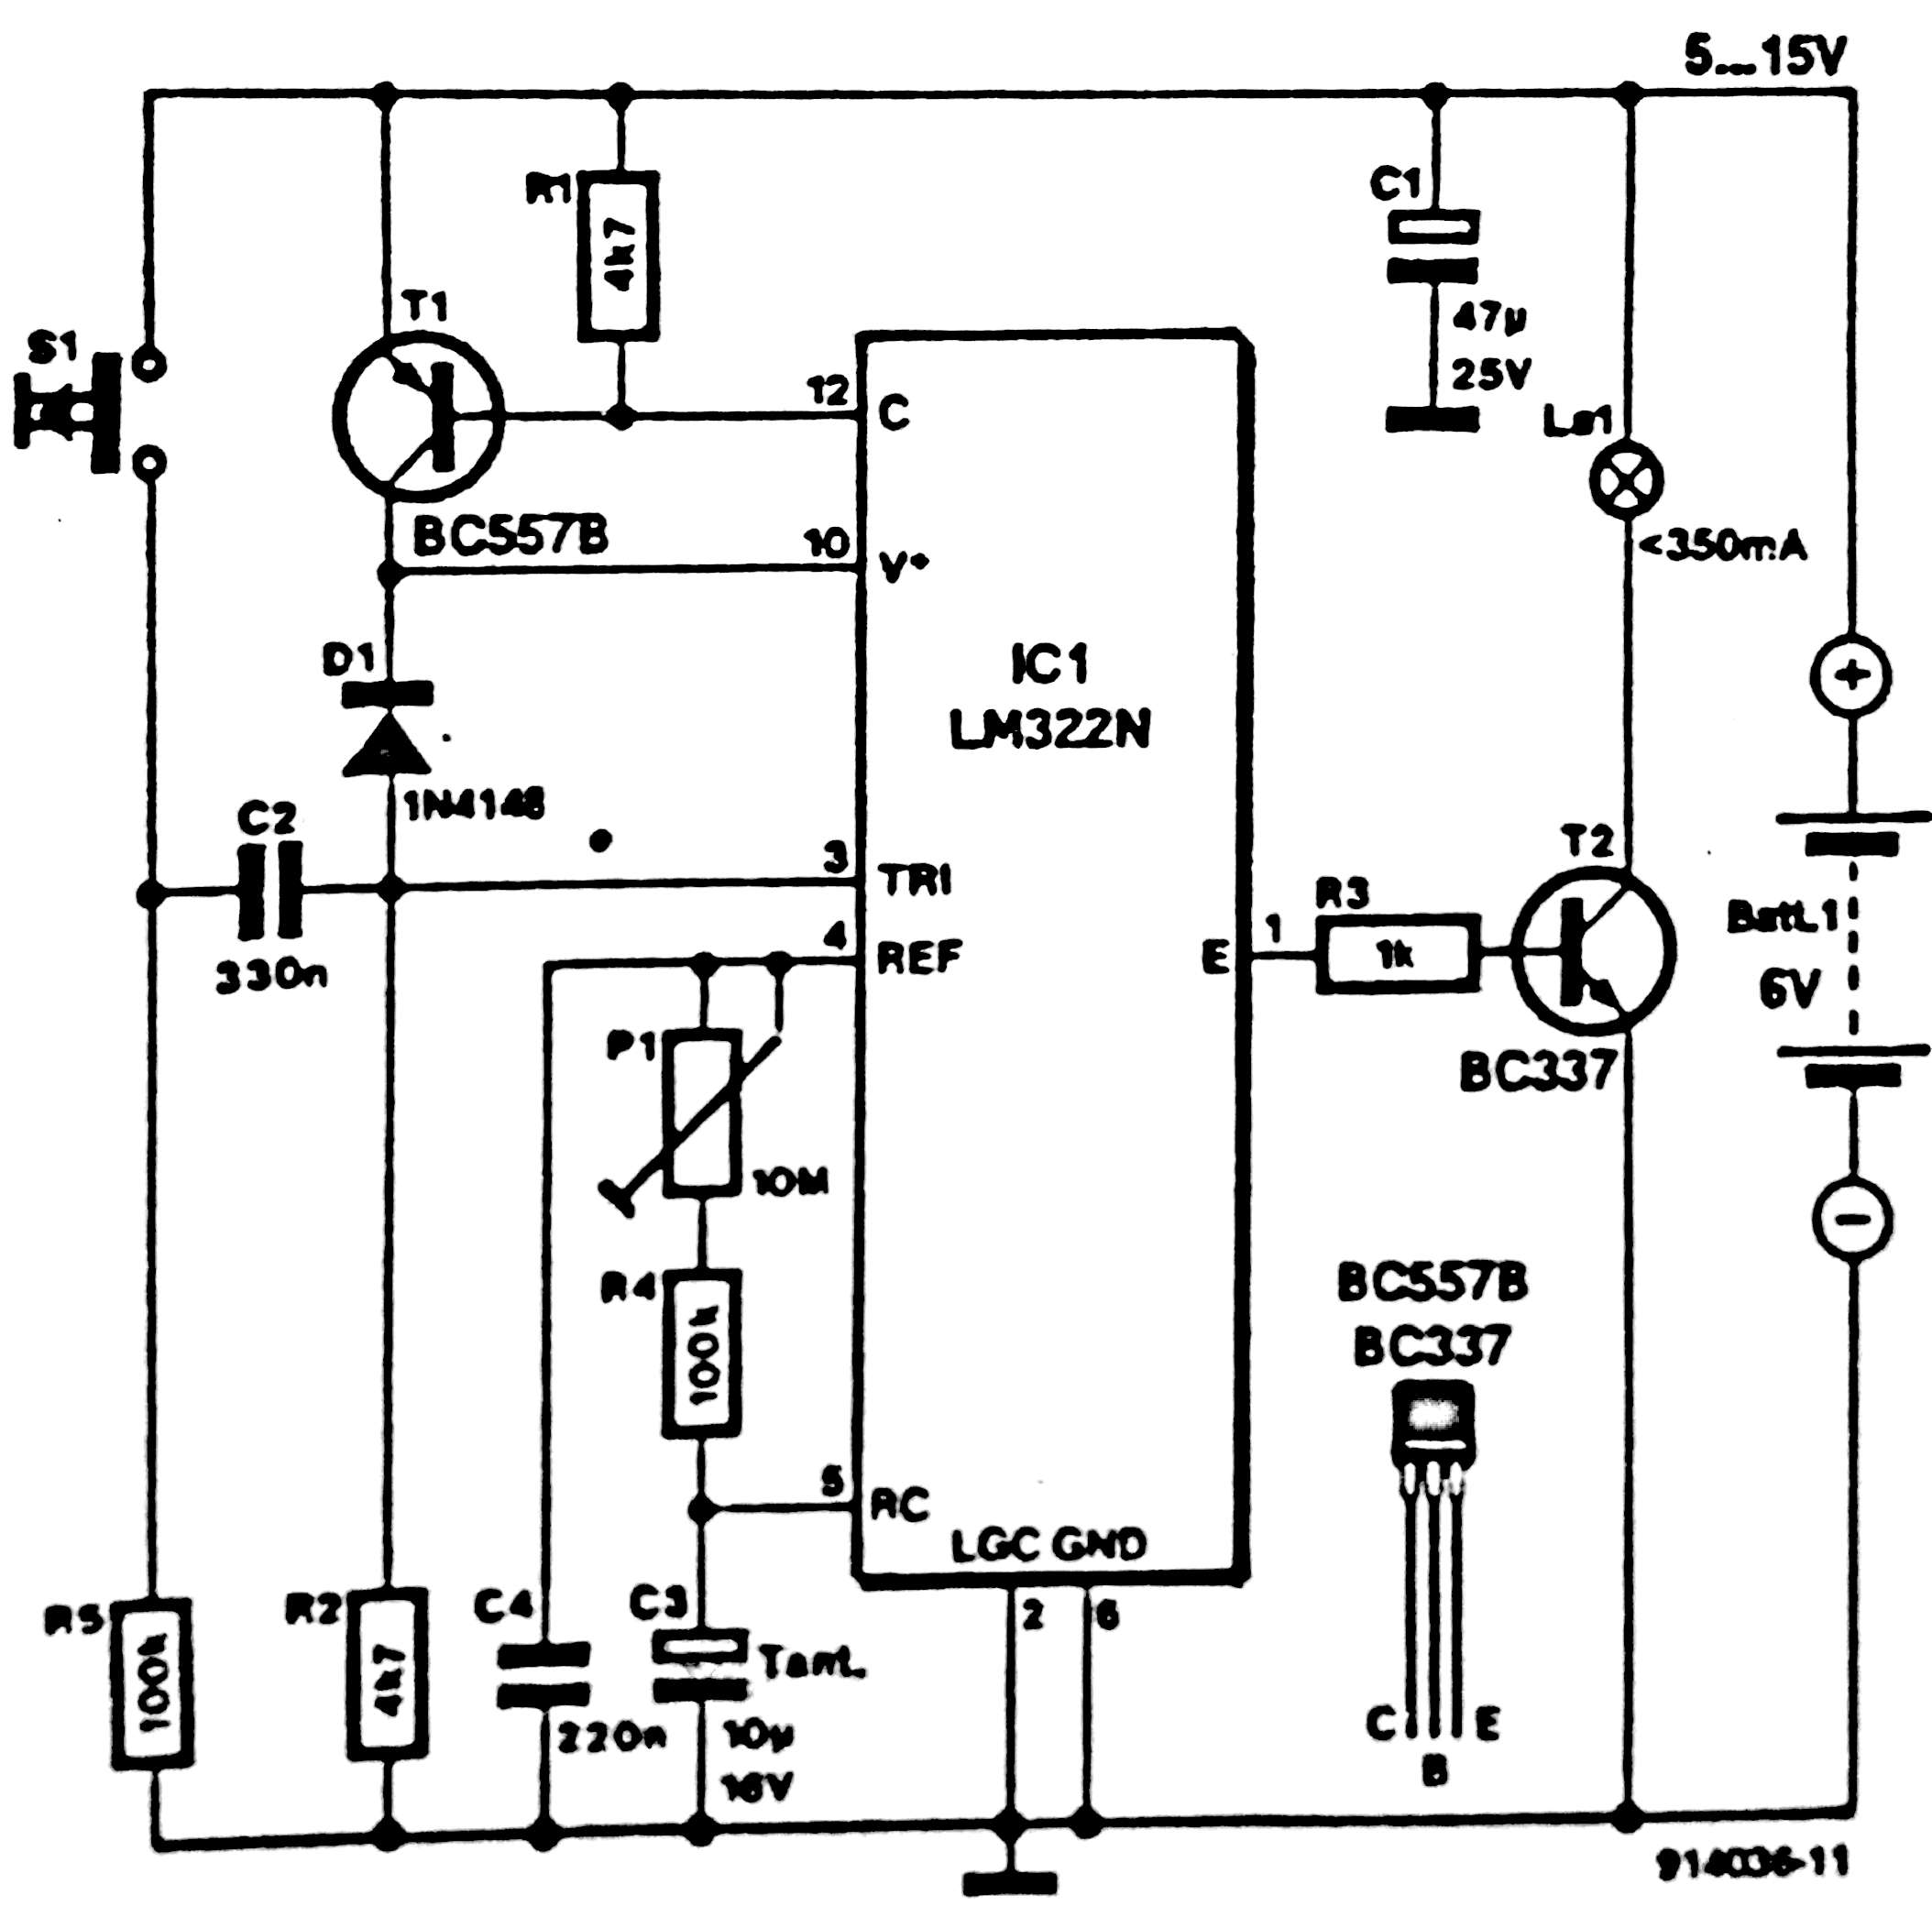 Auto Power off for Audio Equipments Circuit Diagram